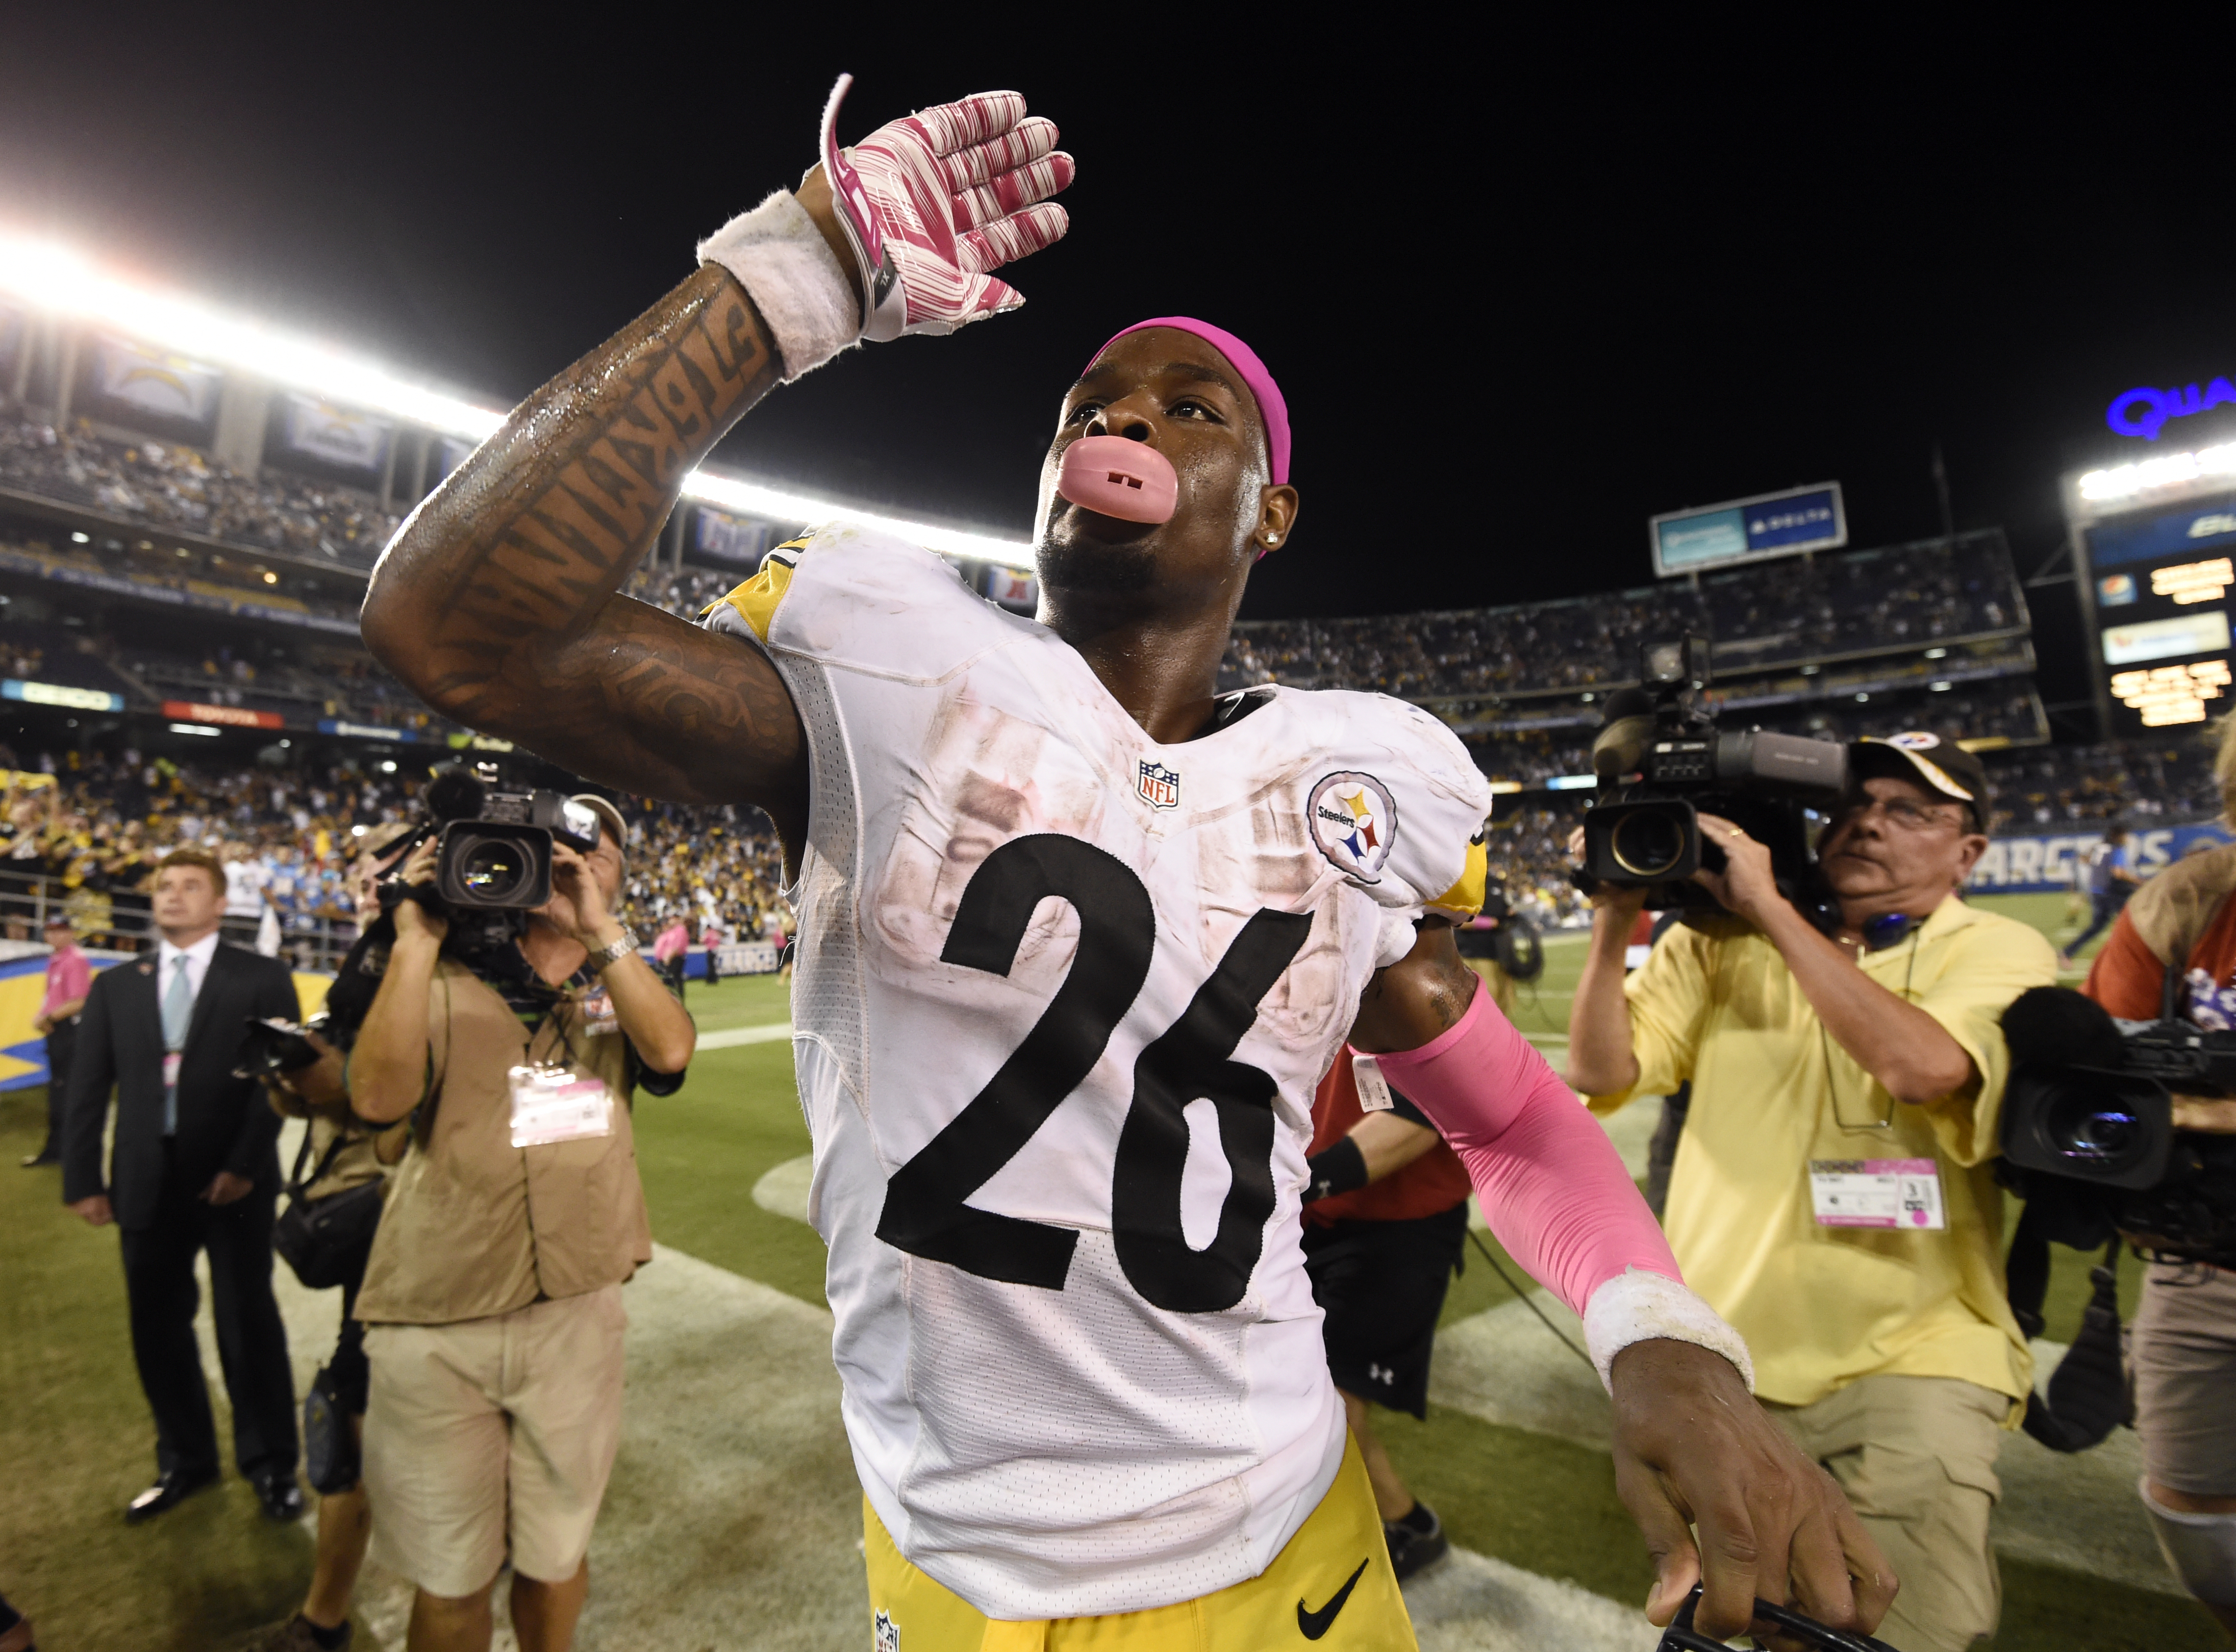 Pittsburgh Steelers running back Le'Veon Bell reacts to fans as he celebrates defeating the San Diego Chargers in an NFL football game Monday, Oct. 12, 2015, in San Diego. The Steelers won, 24-20. (AP Photo/Denis Poroy)